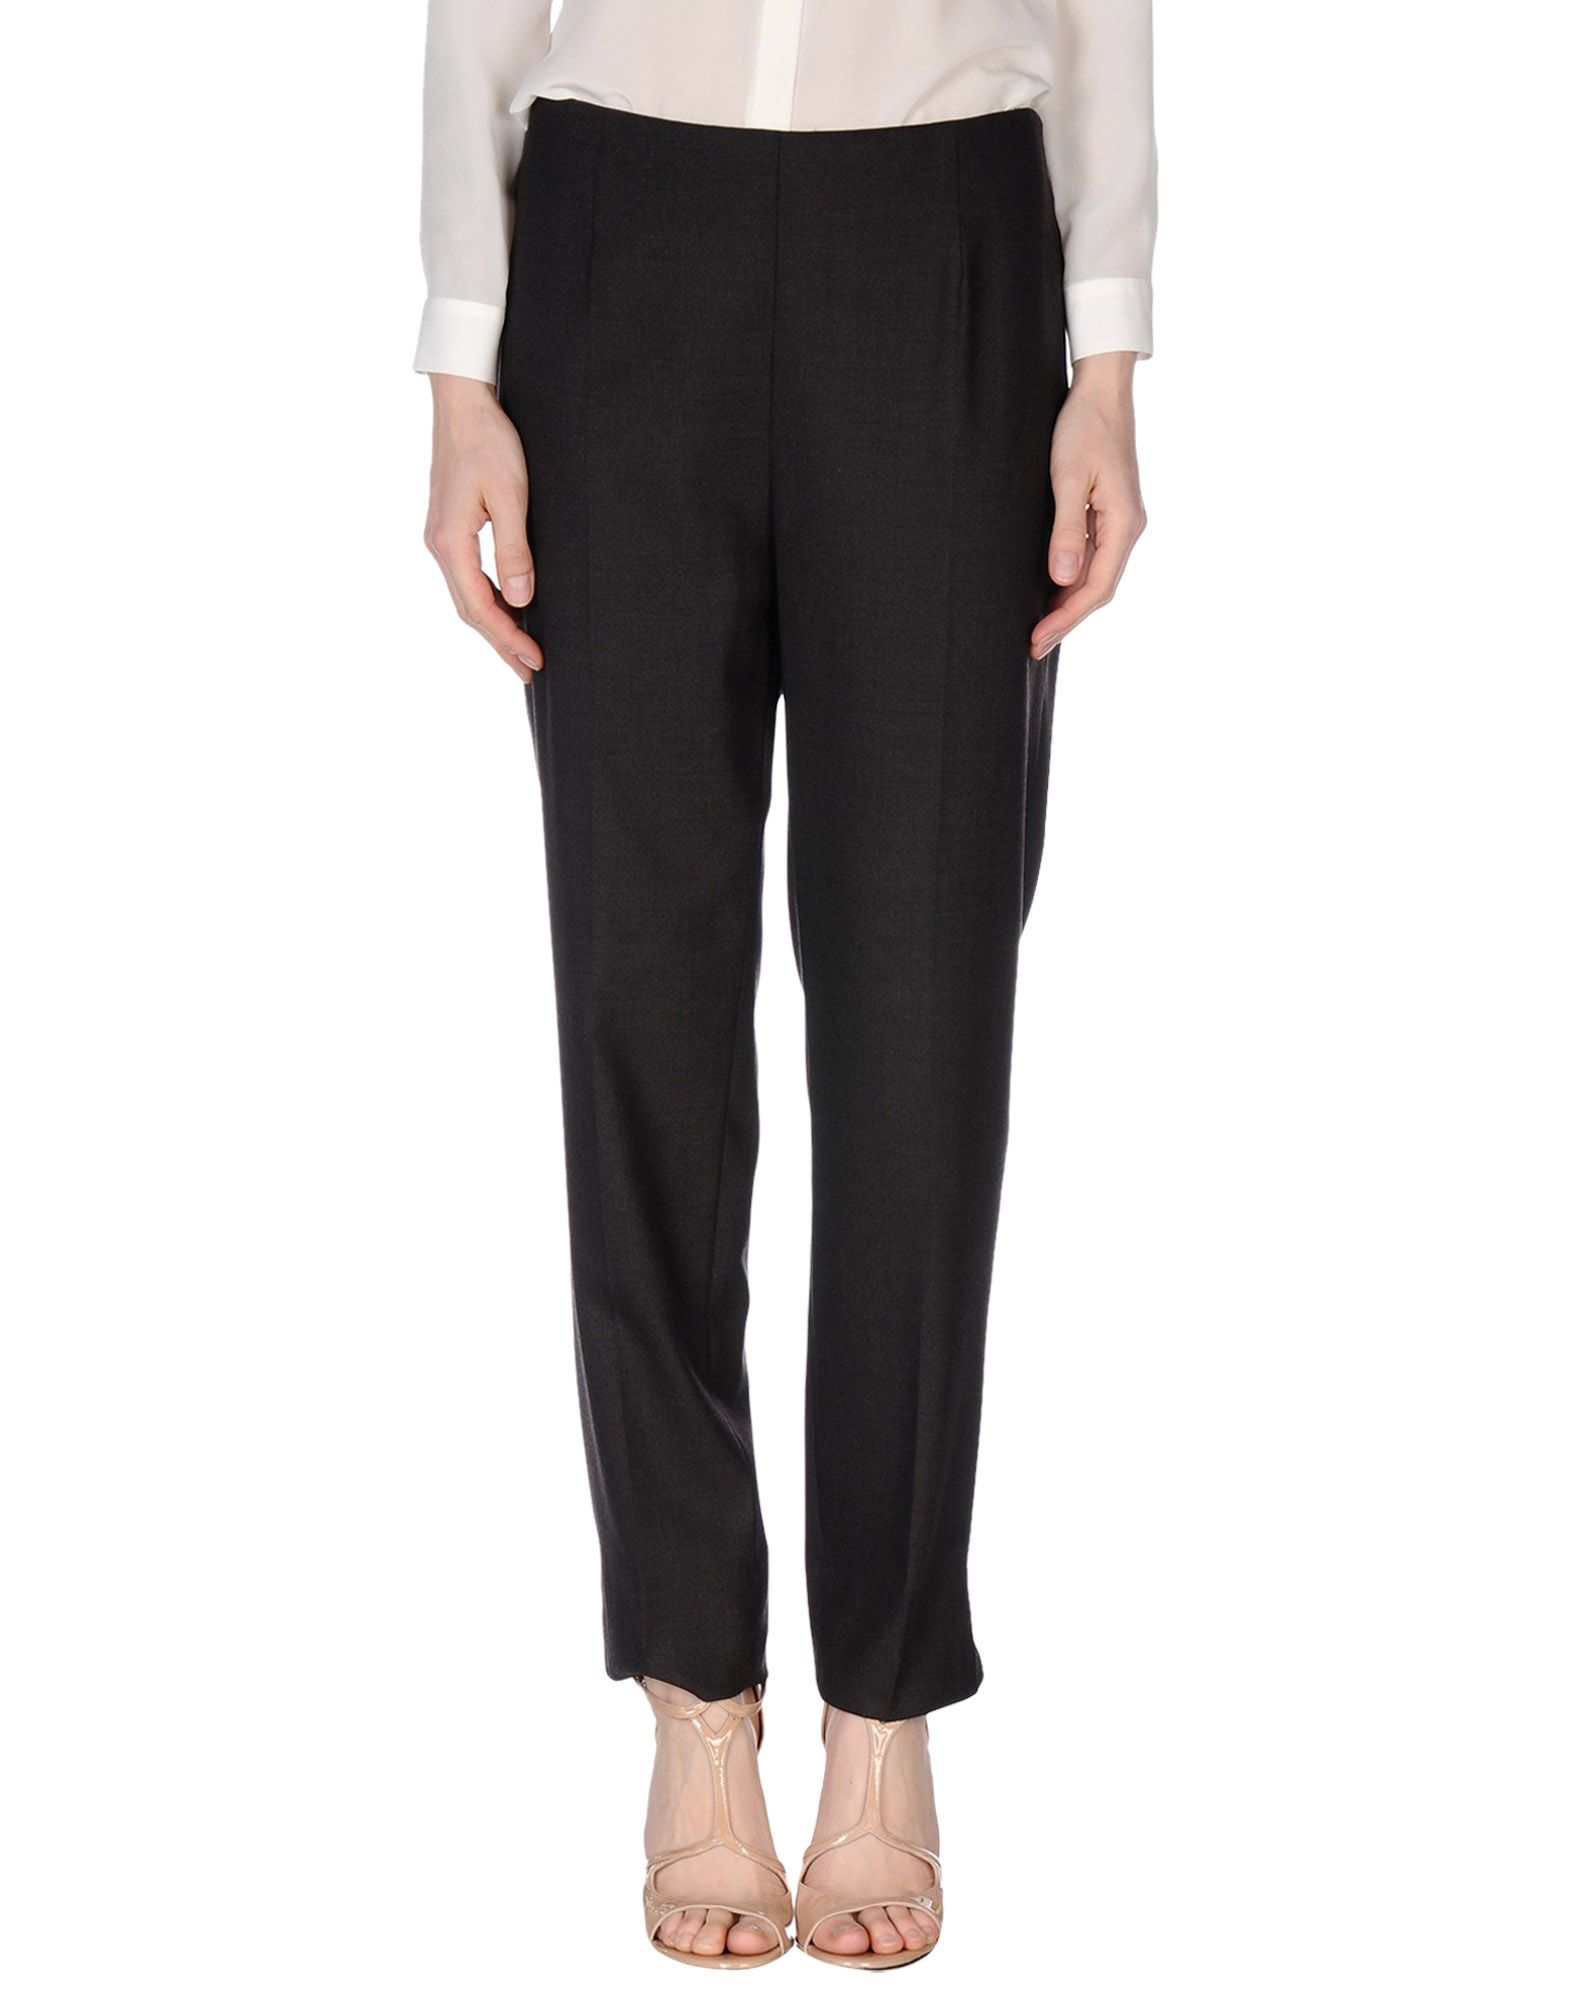 Excellent Brown Dress Pants For Women